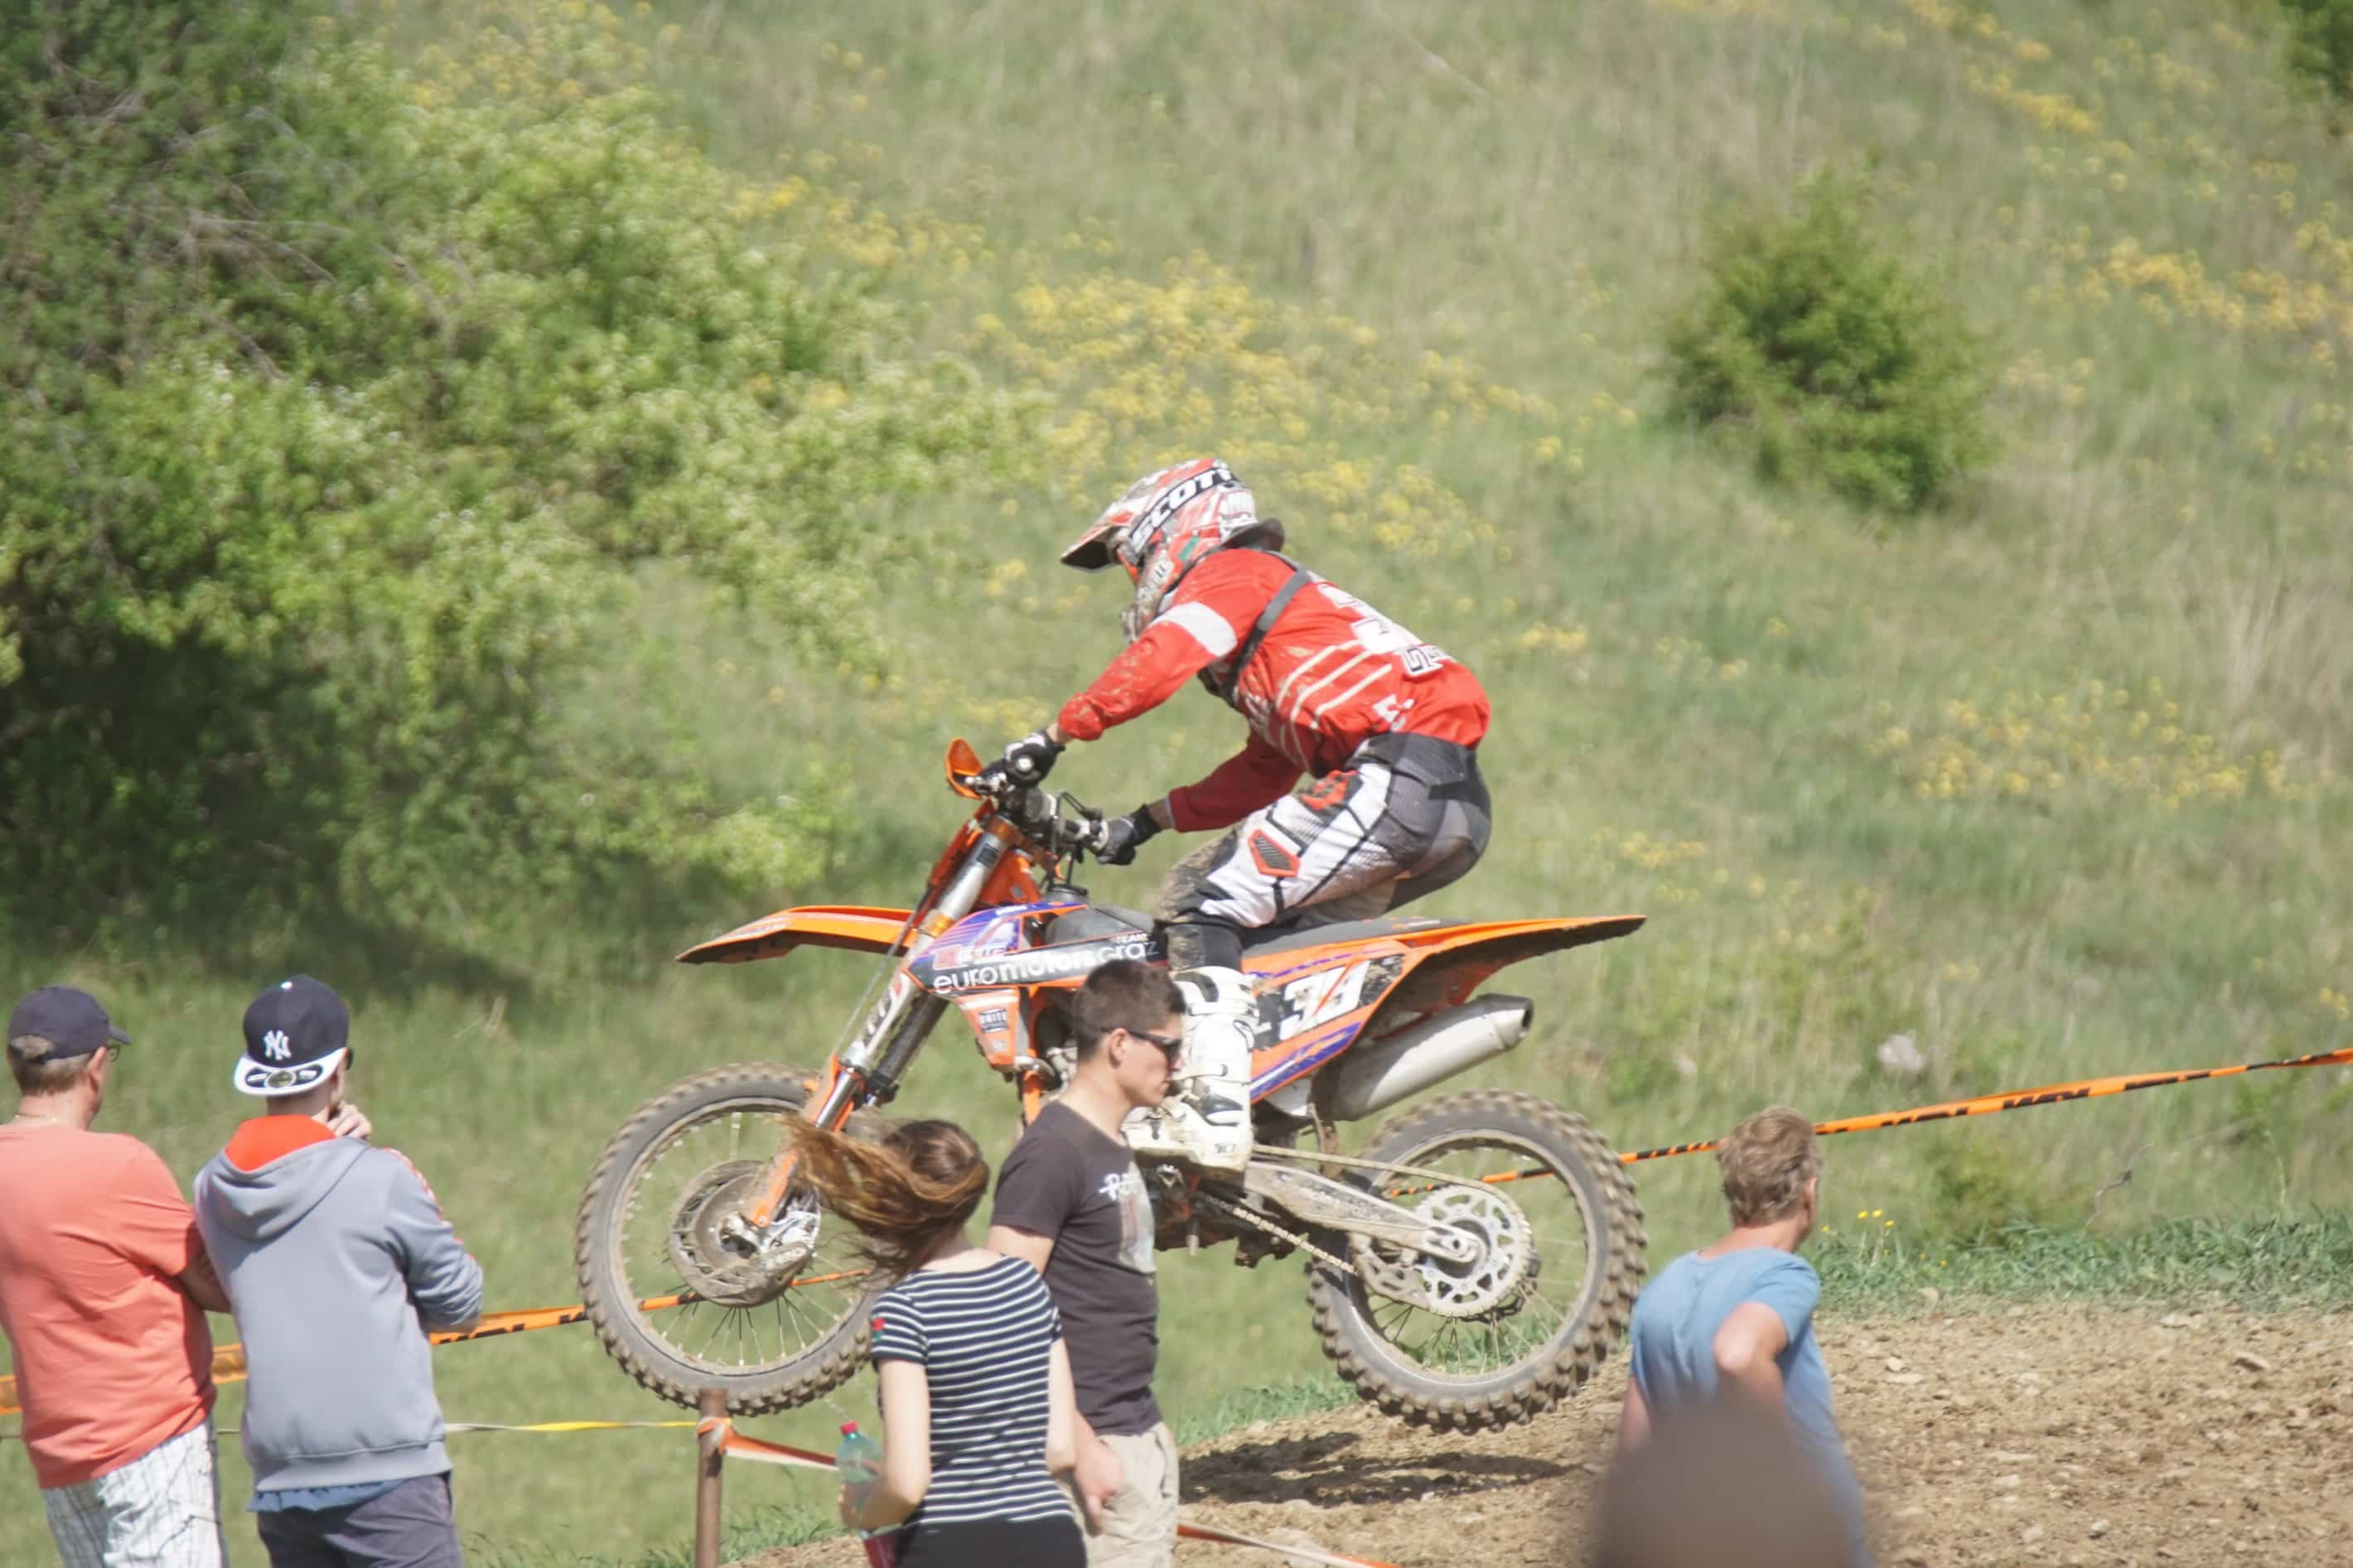 DSC 724_Moto Cross Sittendorf Teil1 am 29.04.2018